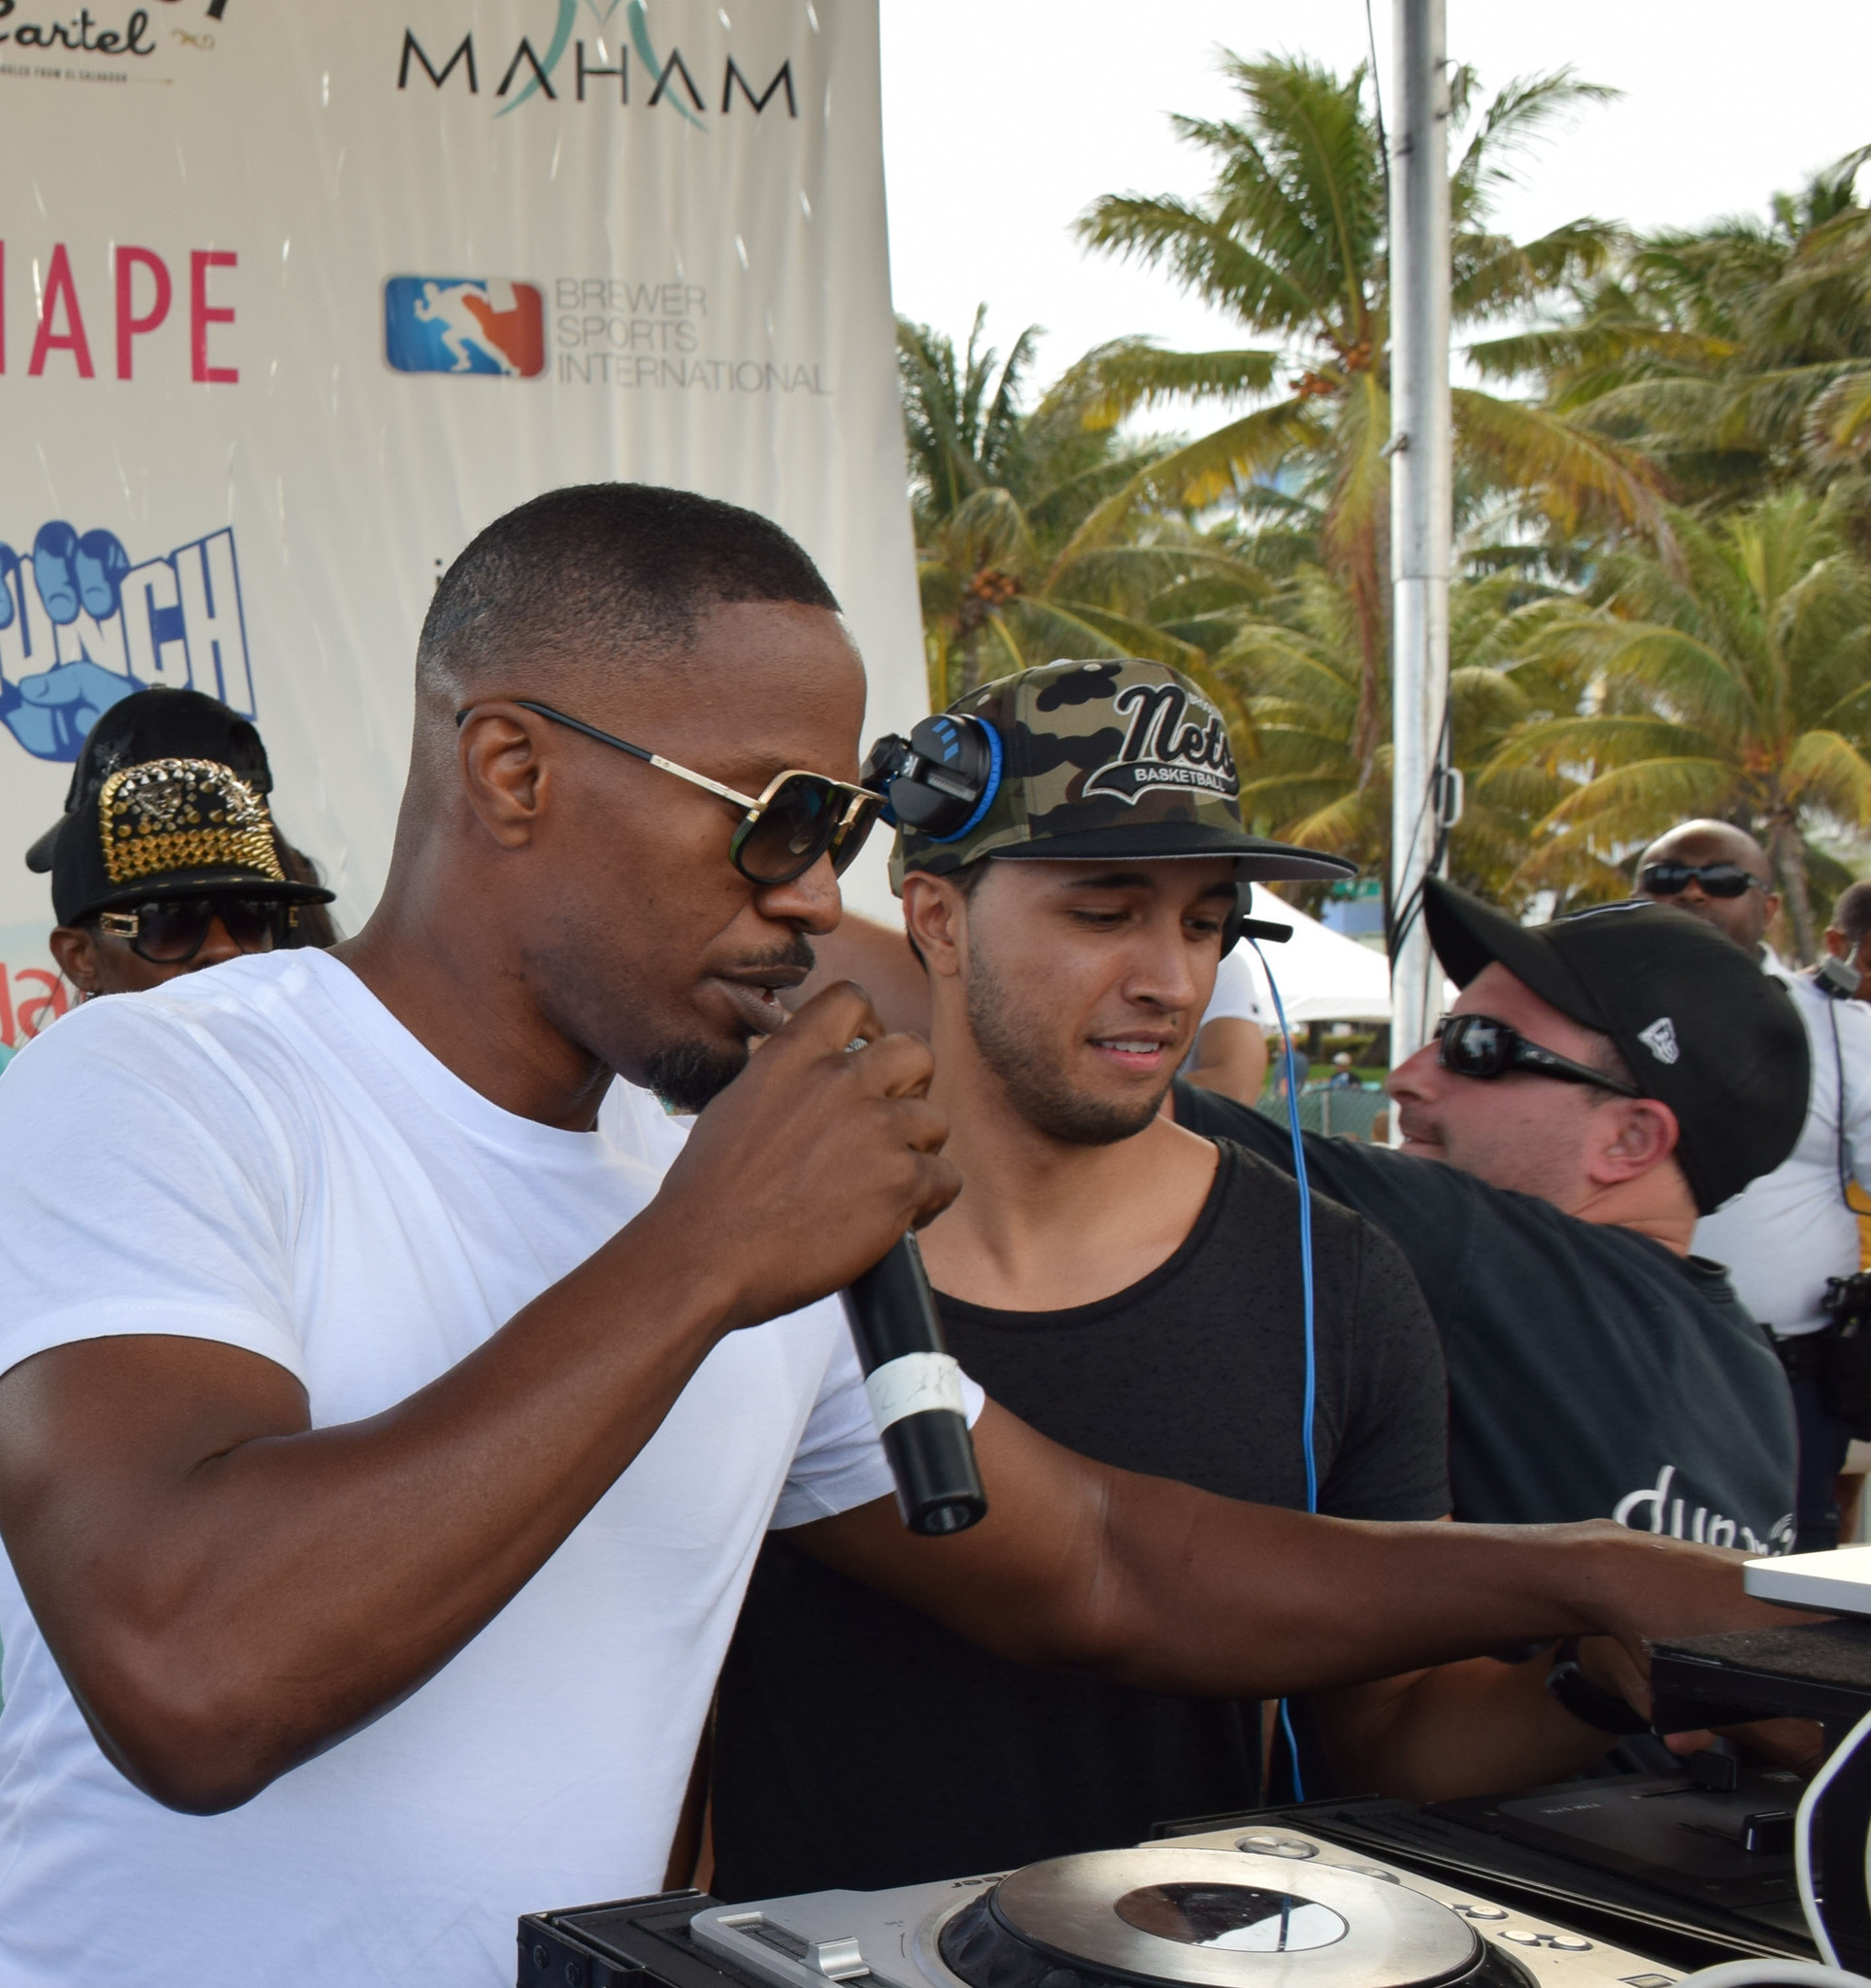 Wildfox Model Beach Volleyball Tournament - Jamie Foxx and DJ take the stage